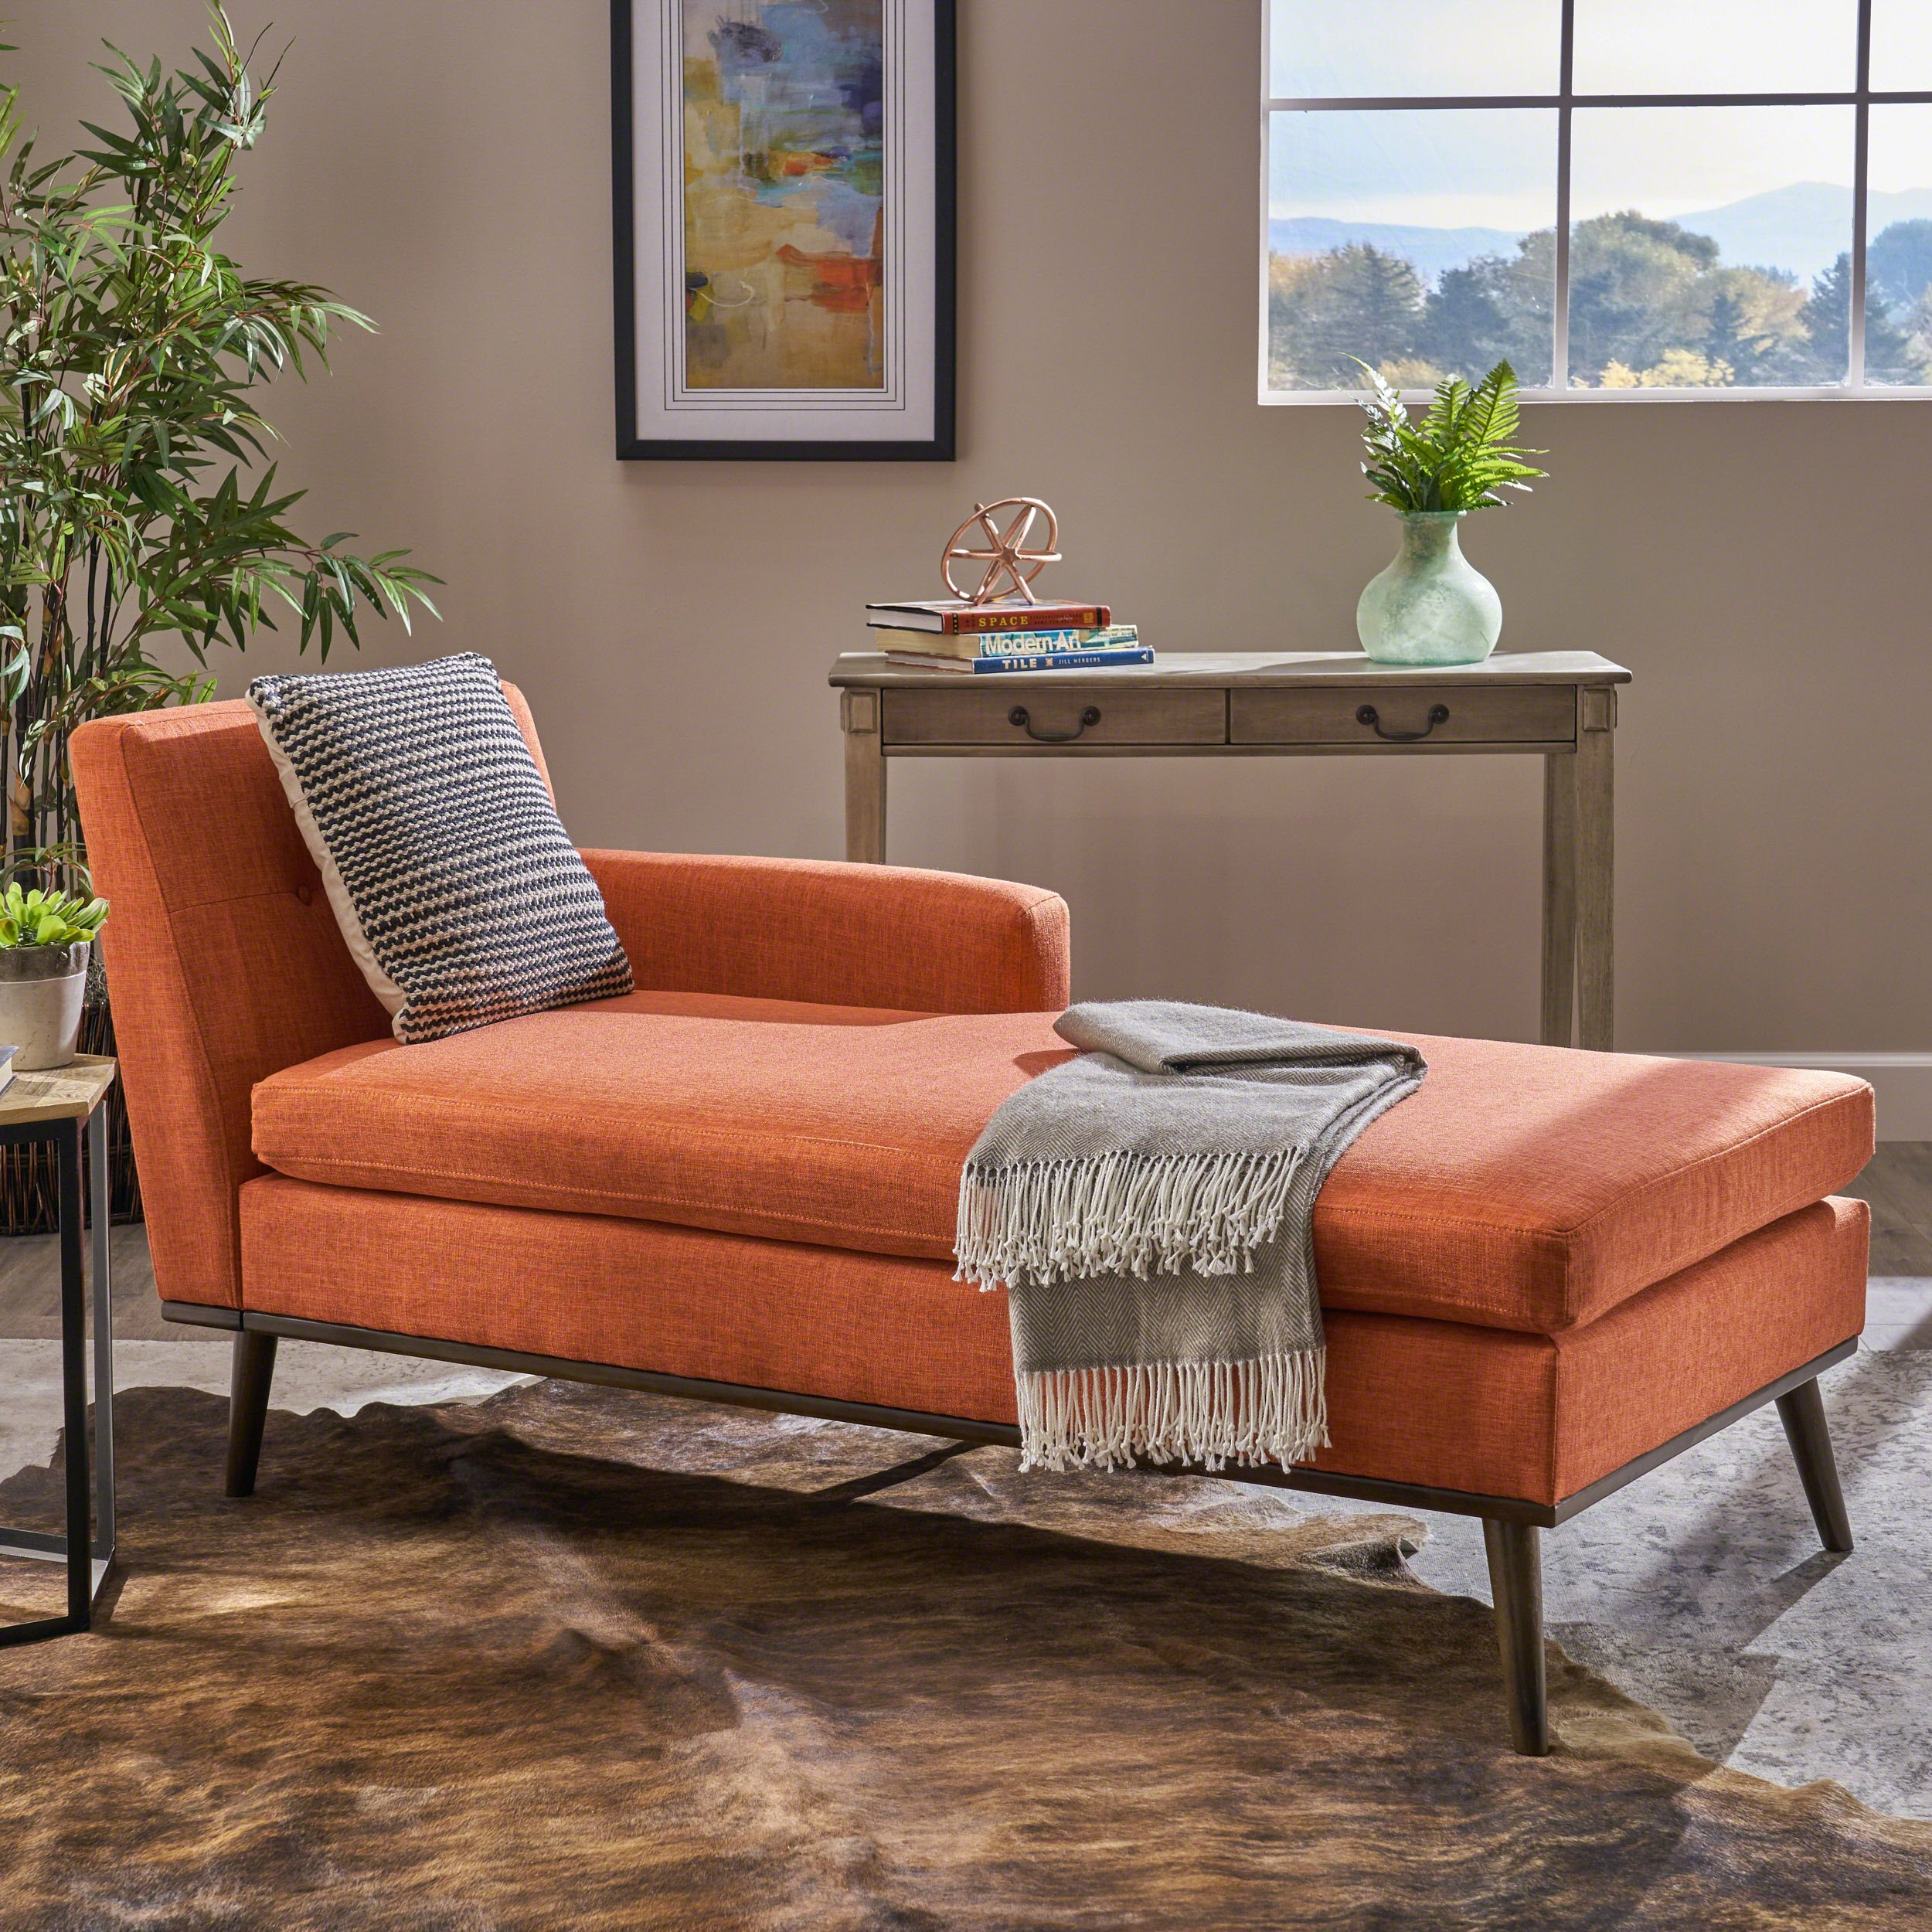 Christopher Knight Home Sophia Mid Century Modern Fabric Chaise Lounge, Muted Orange/Walnut by Christopher Knight Home